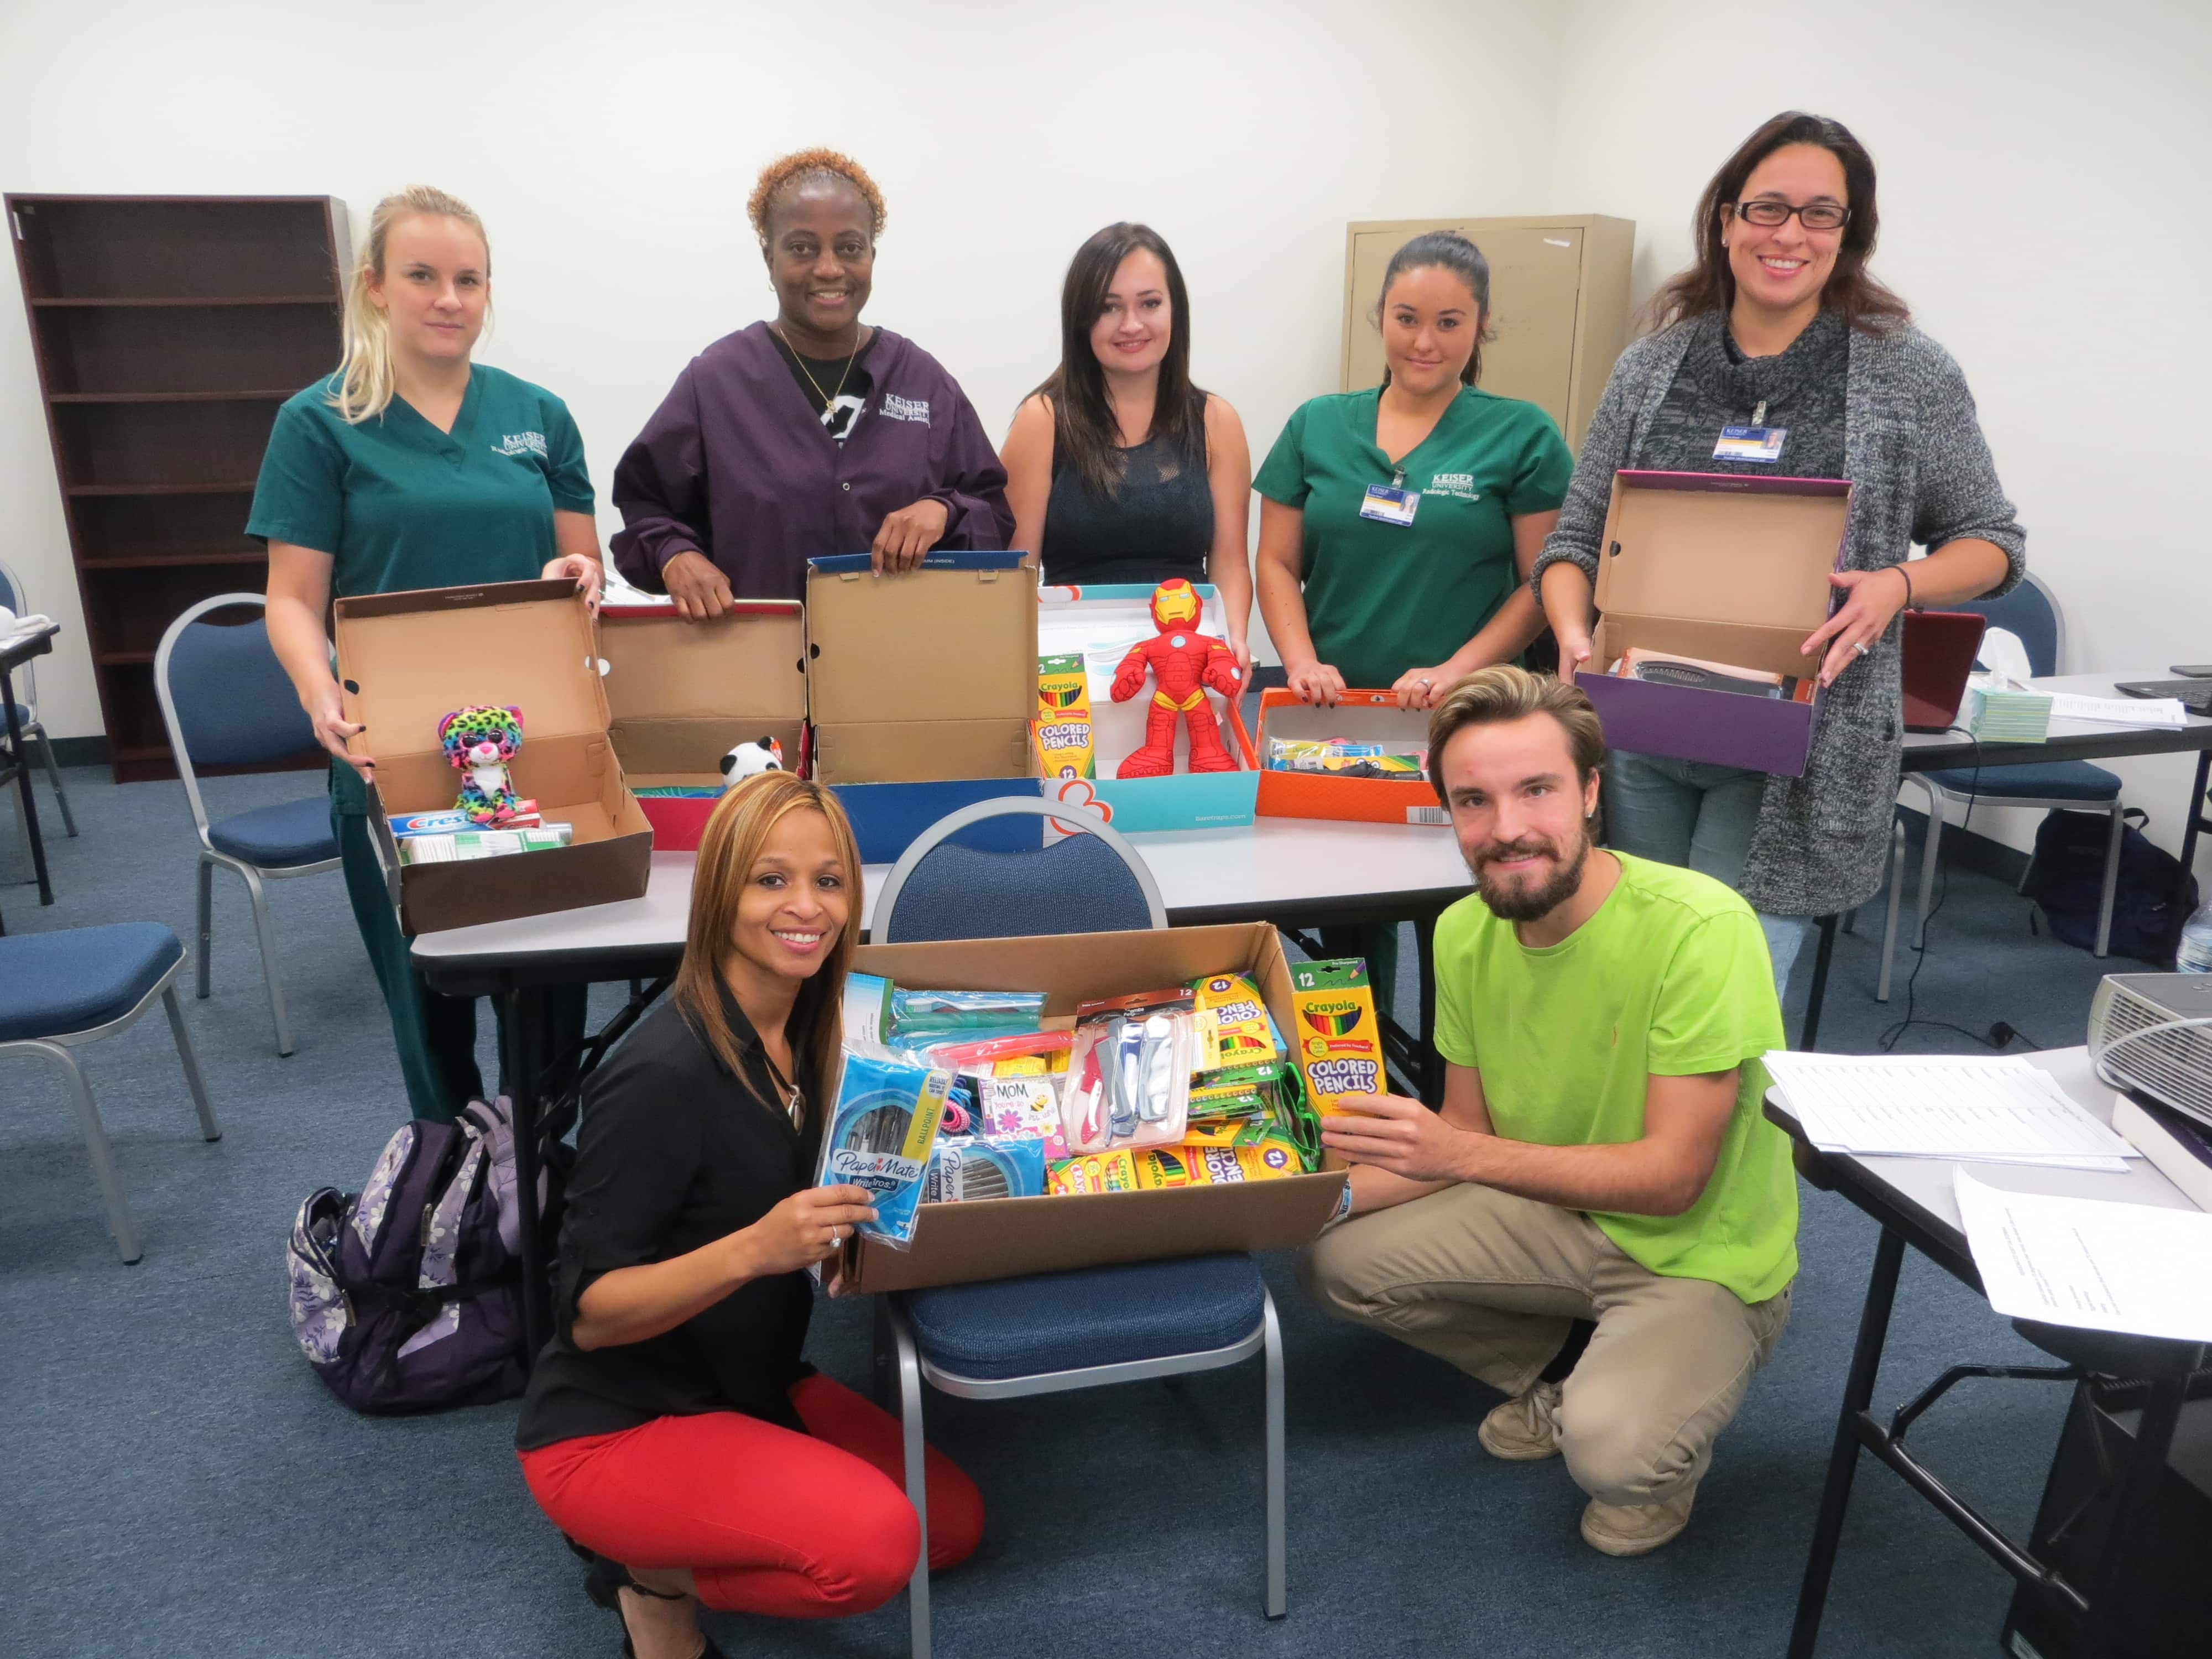 Daytona Beach Donates to Operation Christmas Child